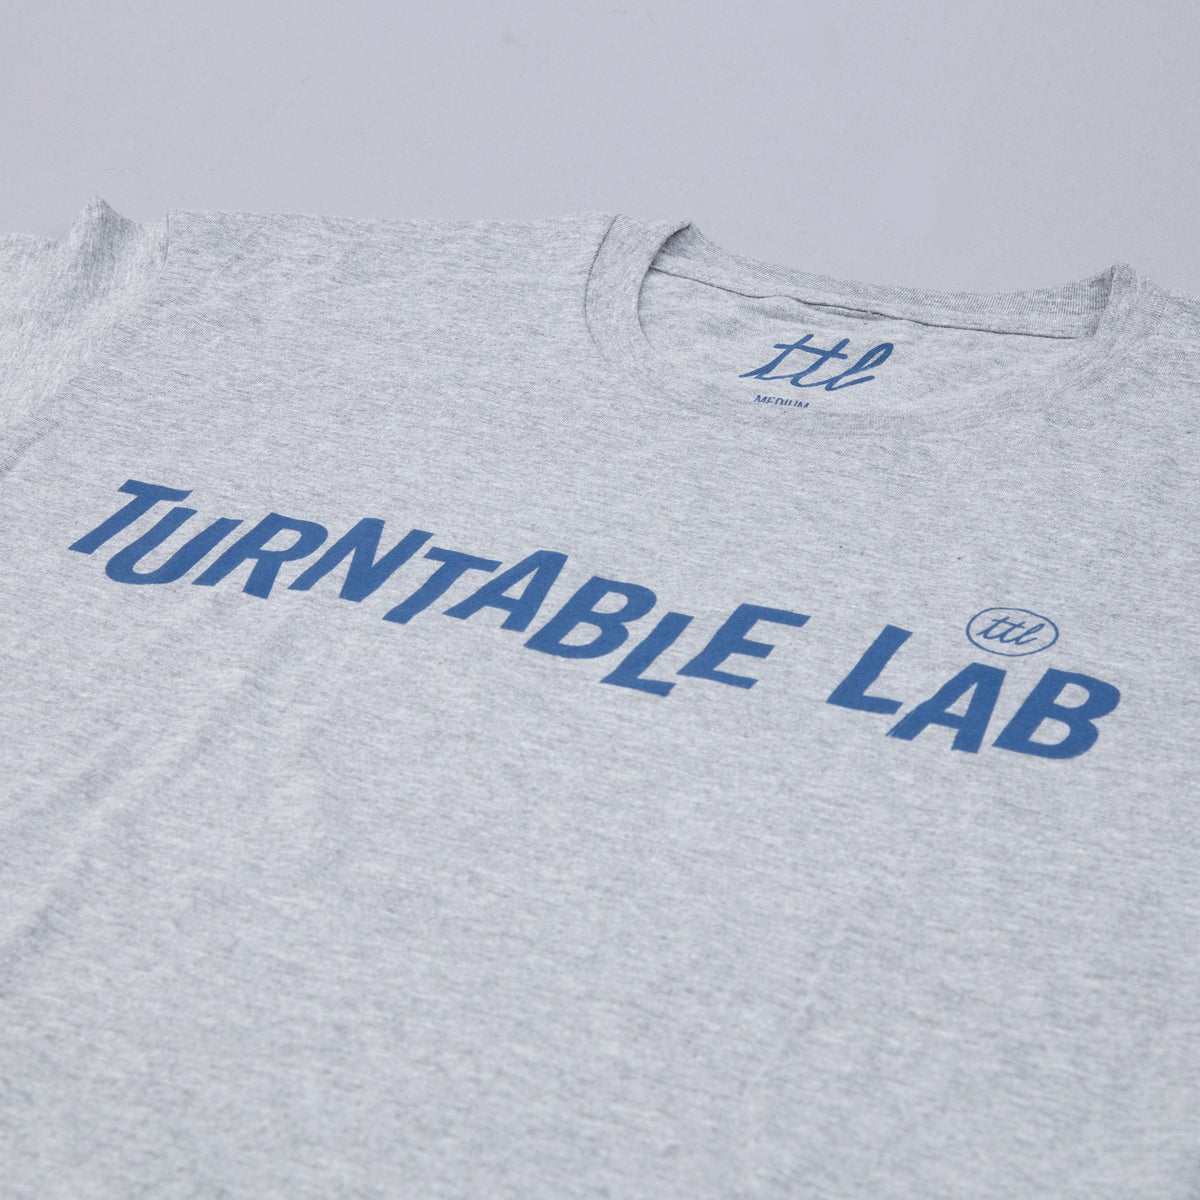 Turntable Lab: R. Miles Shirt - Hoyas